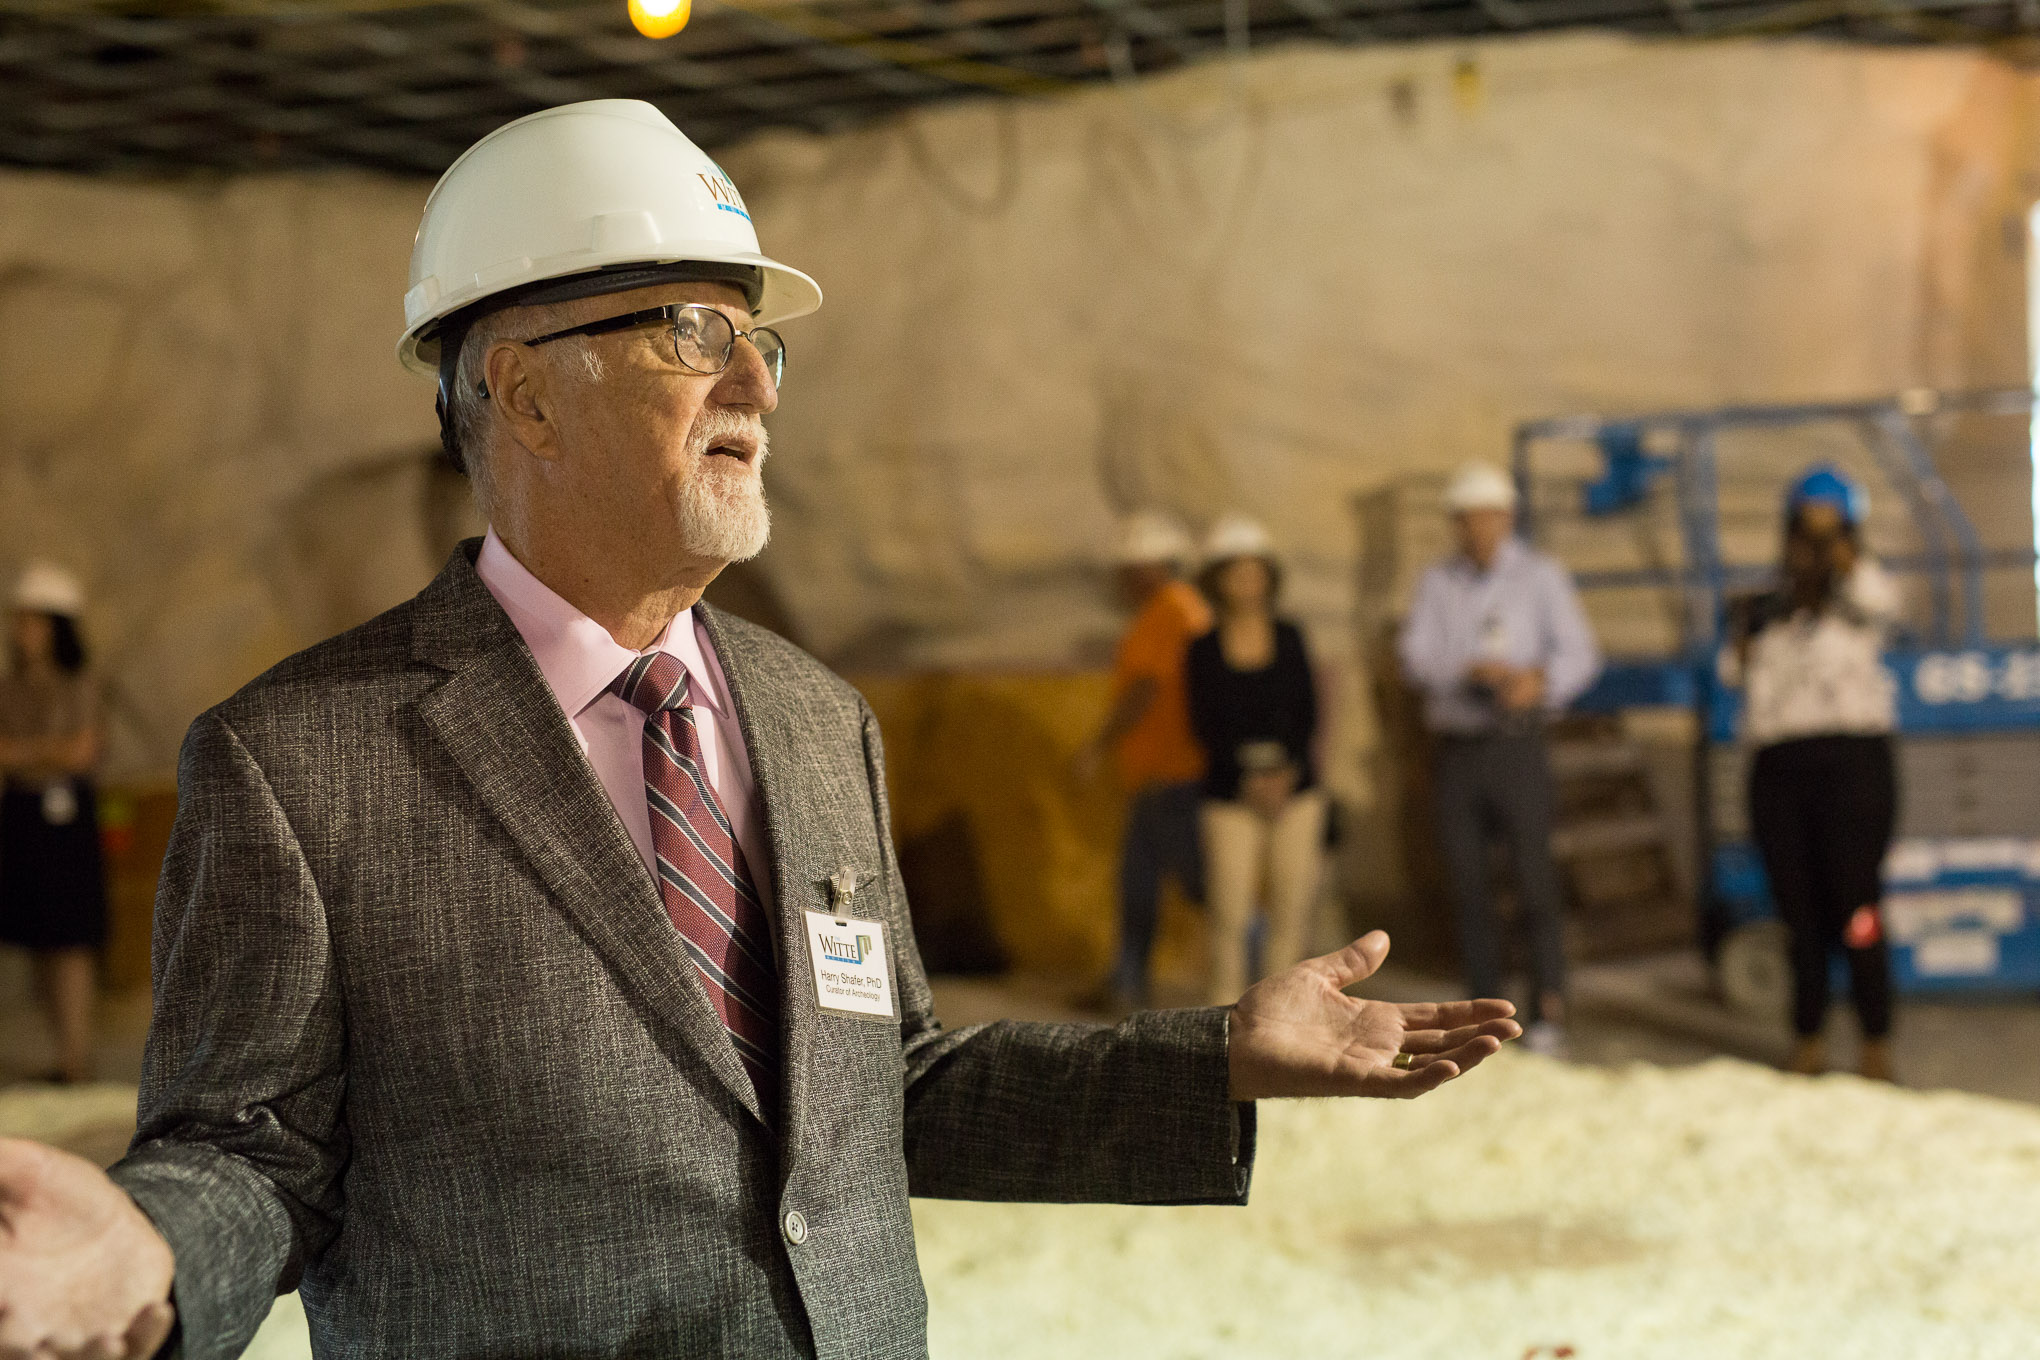 Witte Curator of Archaeology Harry Shafer describes the new permanent exhibition. Photo by Scott Ball.